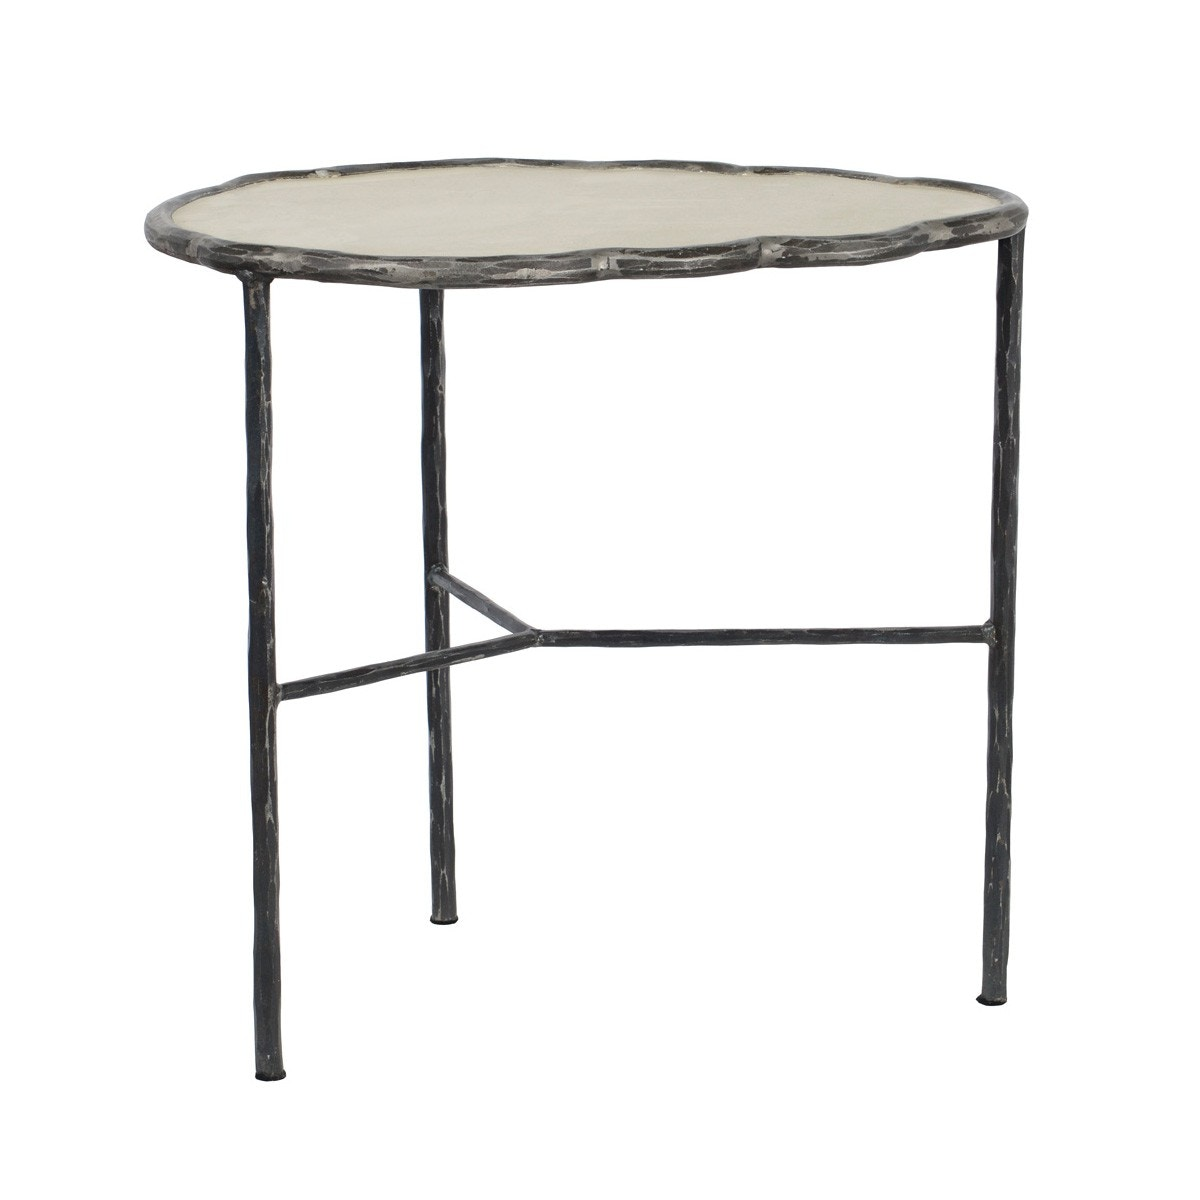 Classic Home Astra Accent Table 22in 51030581 In Portland, Oregon